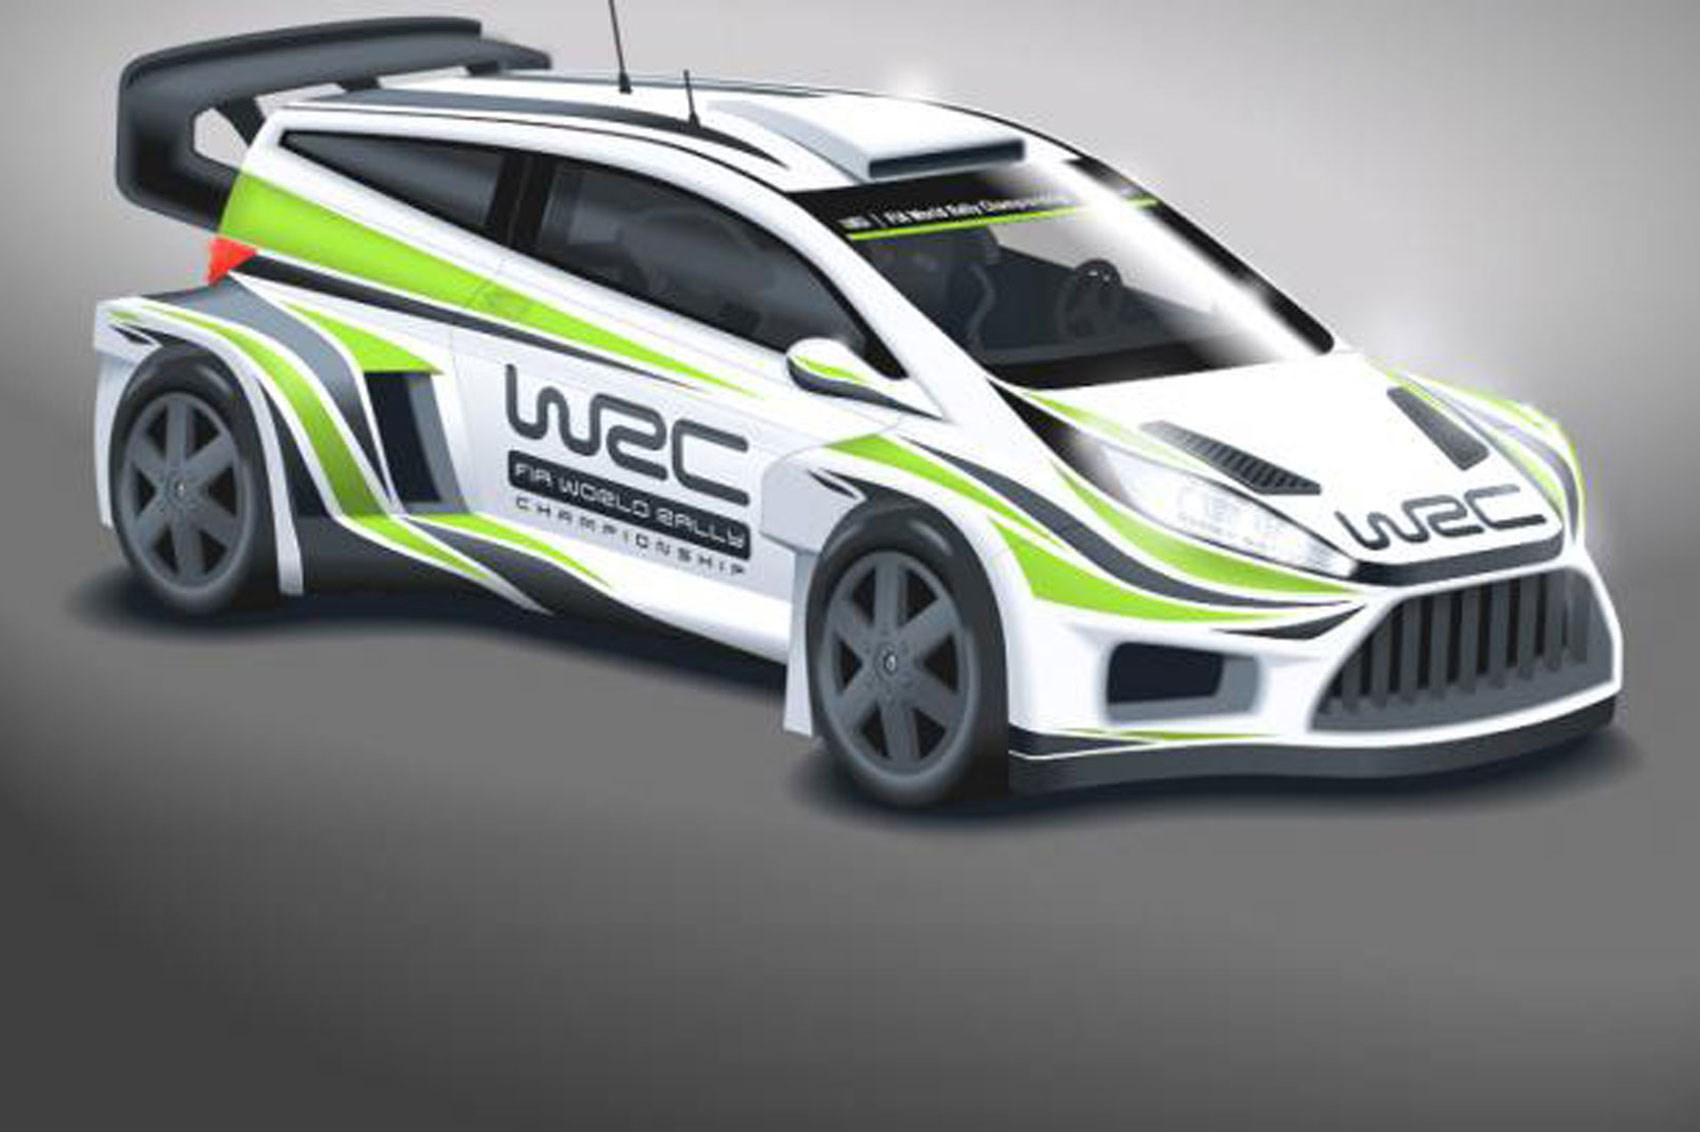 Ultrablogus  Splendid Wild New Look For Wrc Cars In  By Car Magazine With Fetching Wrc Cars Will Get Wider Bodies Bigger Wings And More Power For  With Divine All New Crv Interior Also  Nissan Quest Interior In Addition  Tahoe Interior And  Chrysler  Interior As Well As Toyota Prius  Interior Additionally  Oldsmobile Aurora Interior From Carmagazinecouk With Ultrablogus  Fetching Wild New Look For Wrc Cars In  By Car Magazine With Divine Wrc Cars Will Get Wider Bodies Bigger Wings And More Power For  And Splendid All New Crv Interior Also  Nissan Quest Interior In Addition  Tahoe Interior From Carmagazinecouk